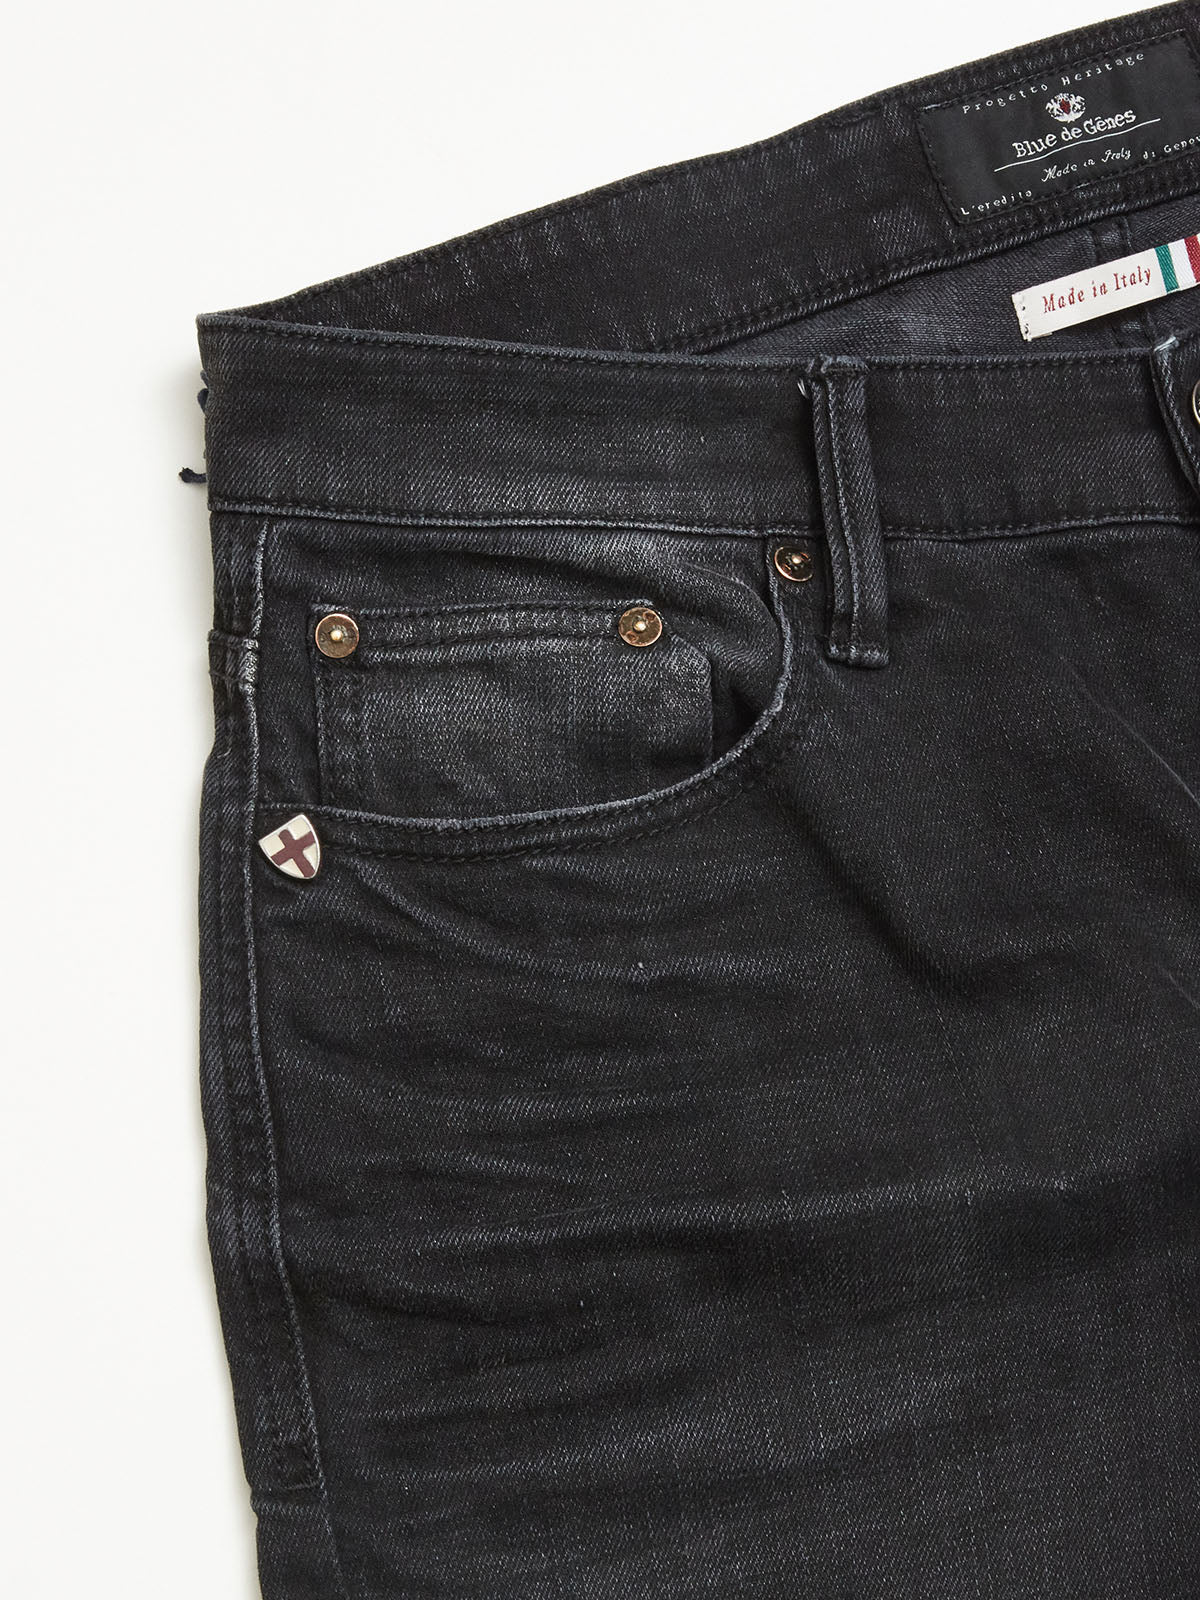 Vinci HG Light Jeans